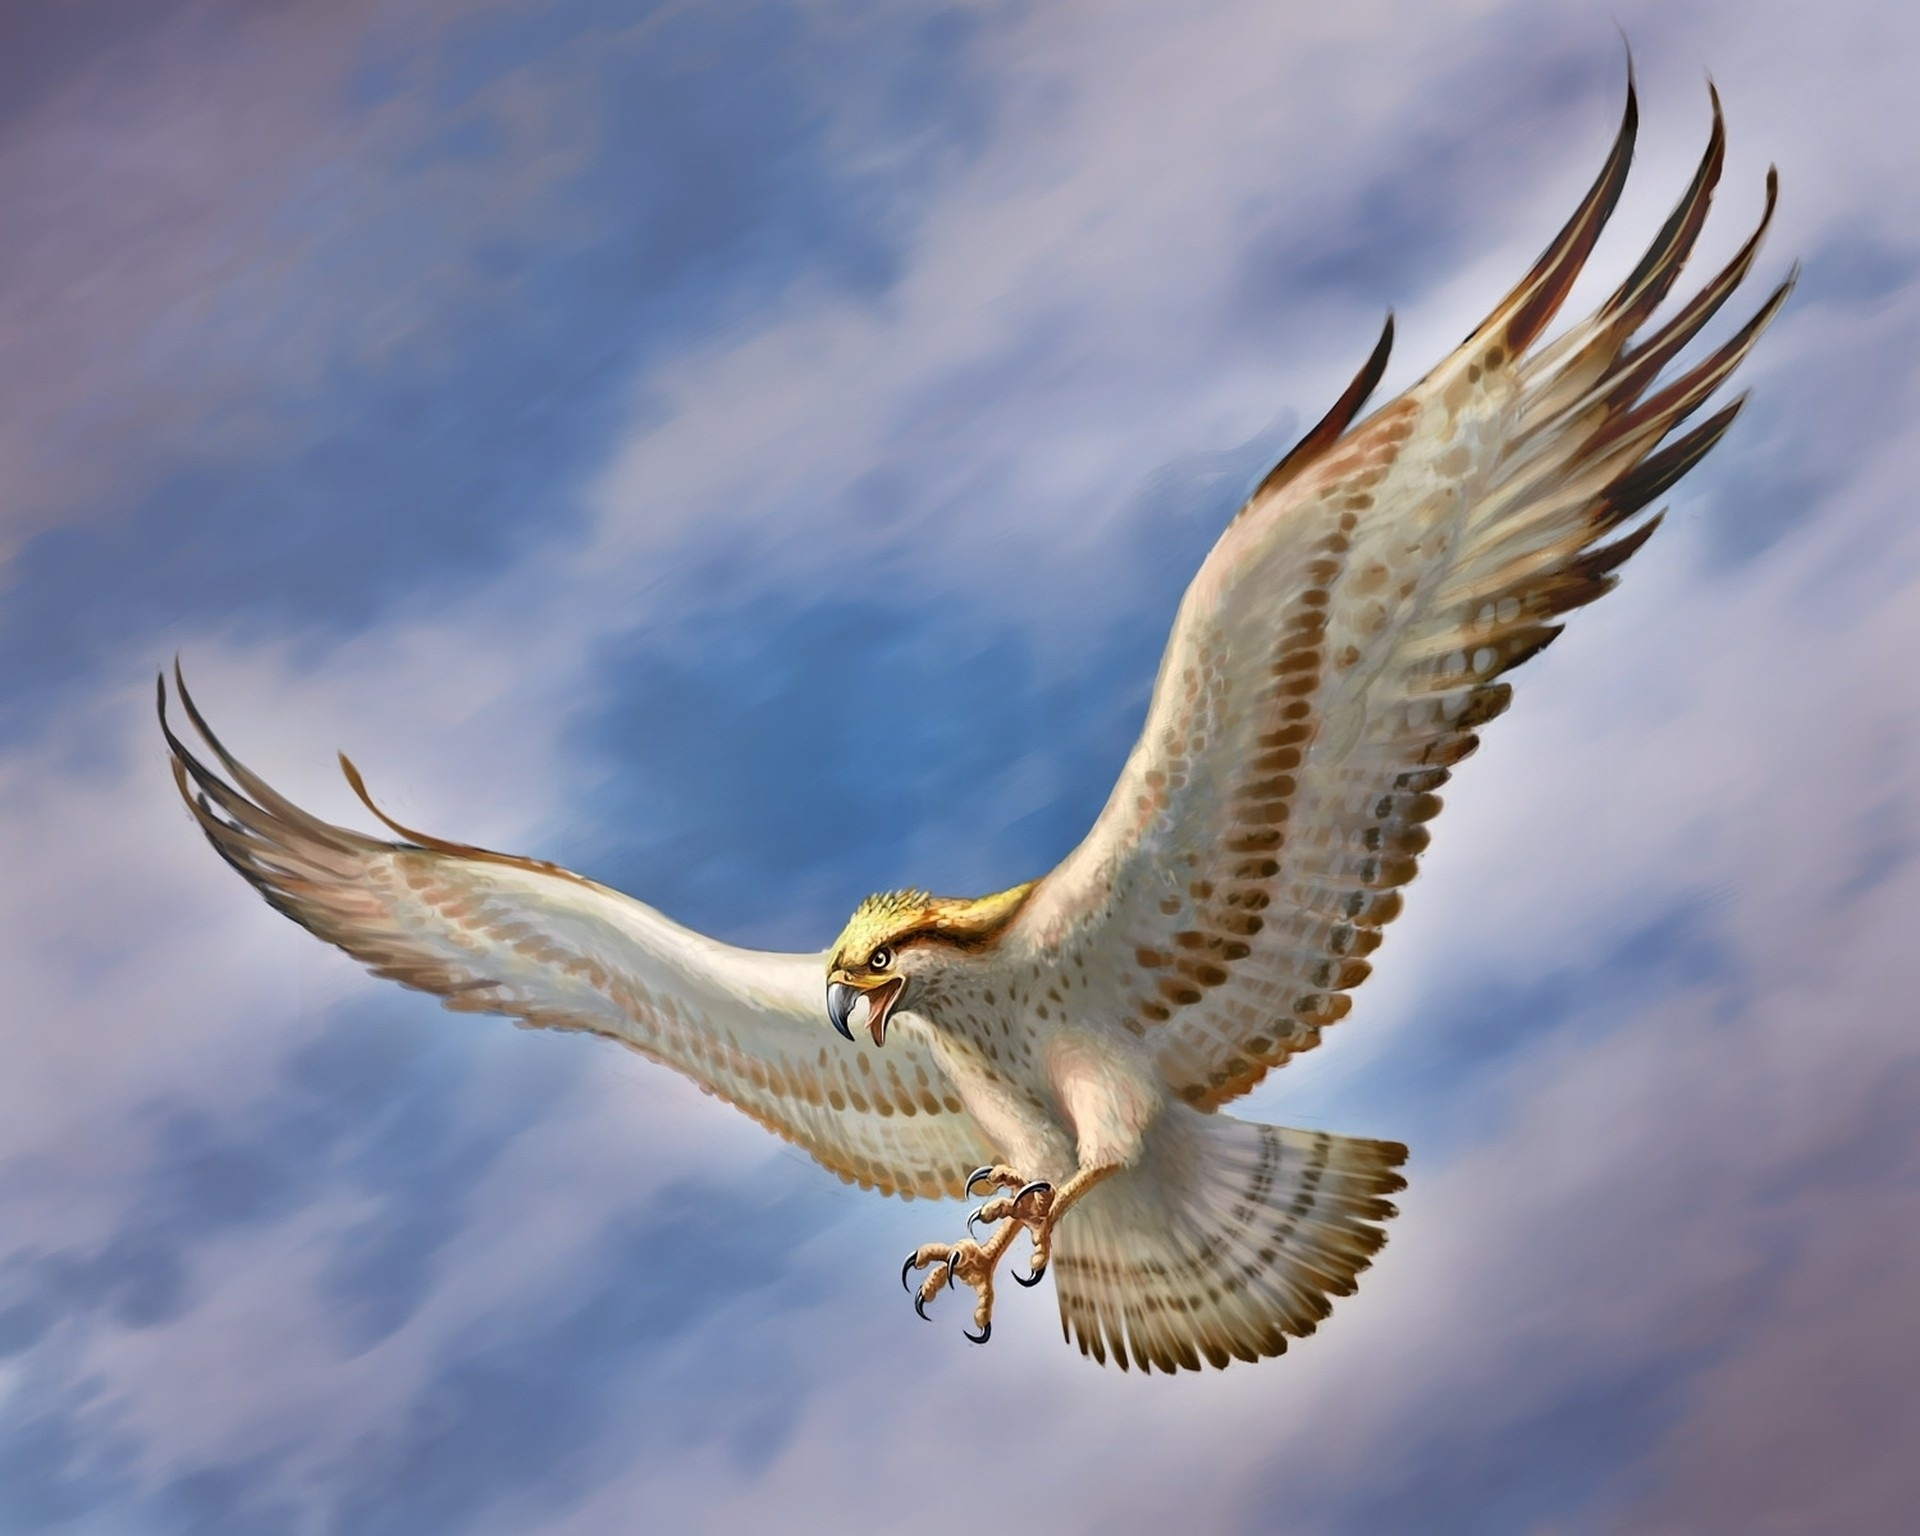 flying eagle wallpapers, best flying eagle wallpapers in high